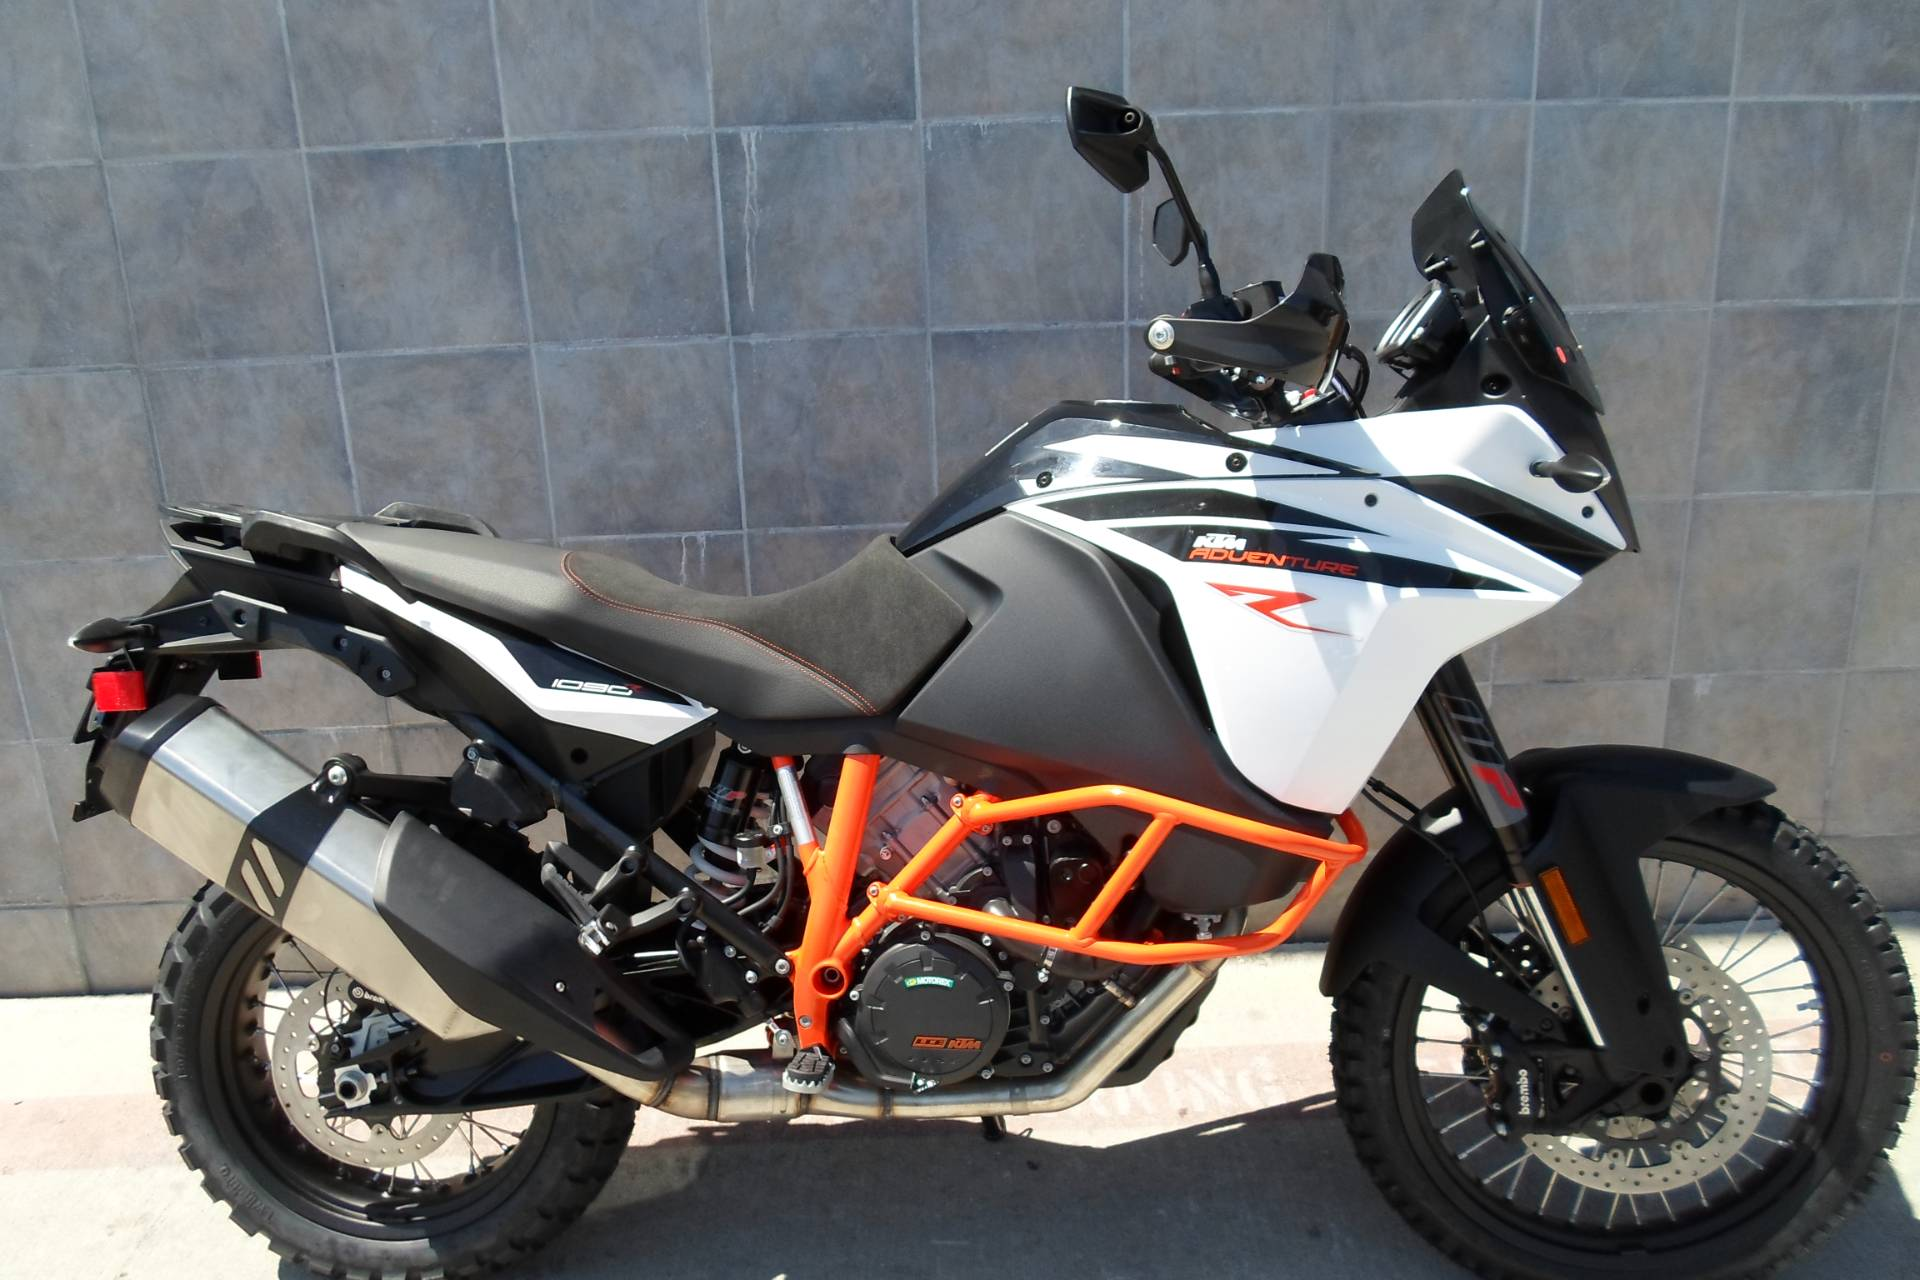 New Motorcycles For Sale San Marcos Ca >> New 2018 KTM 1090 Adventure R Motorcycles in San Marcos, CA